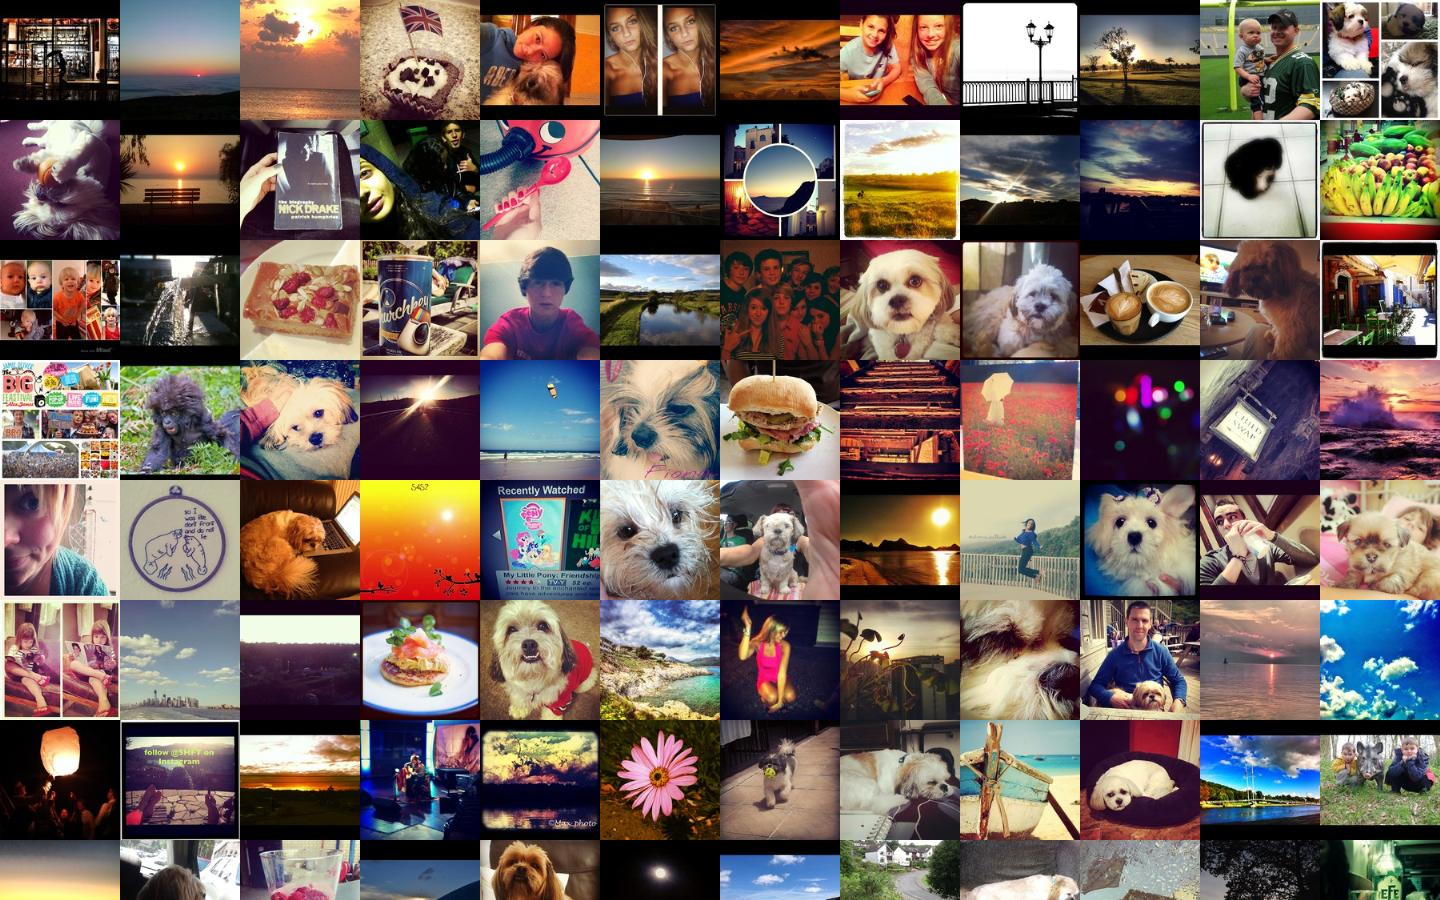 Instagram Wallpaper: Put Instagram Photos On Your Desktop Wallpaper With John's